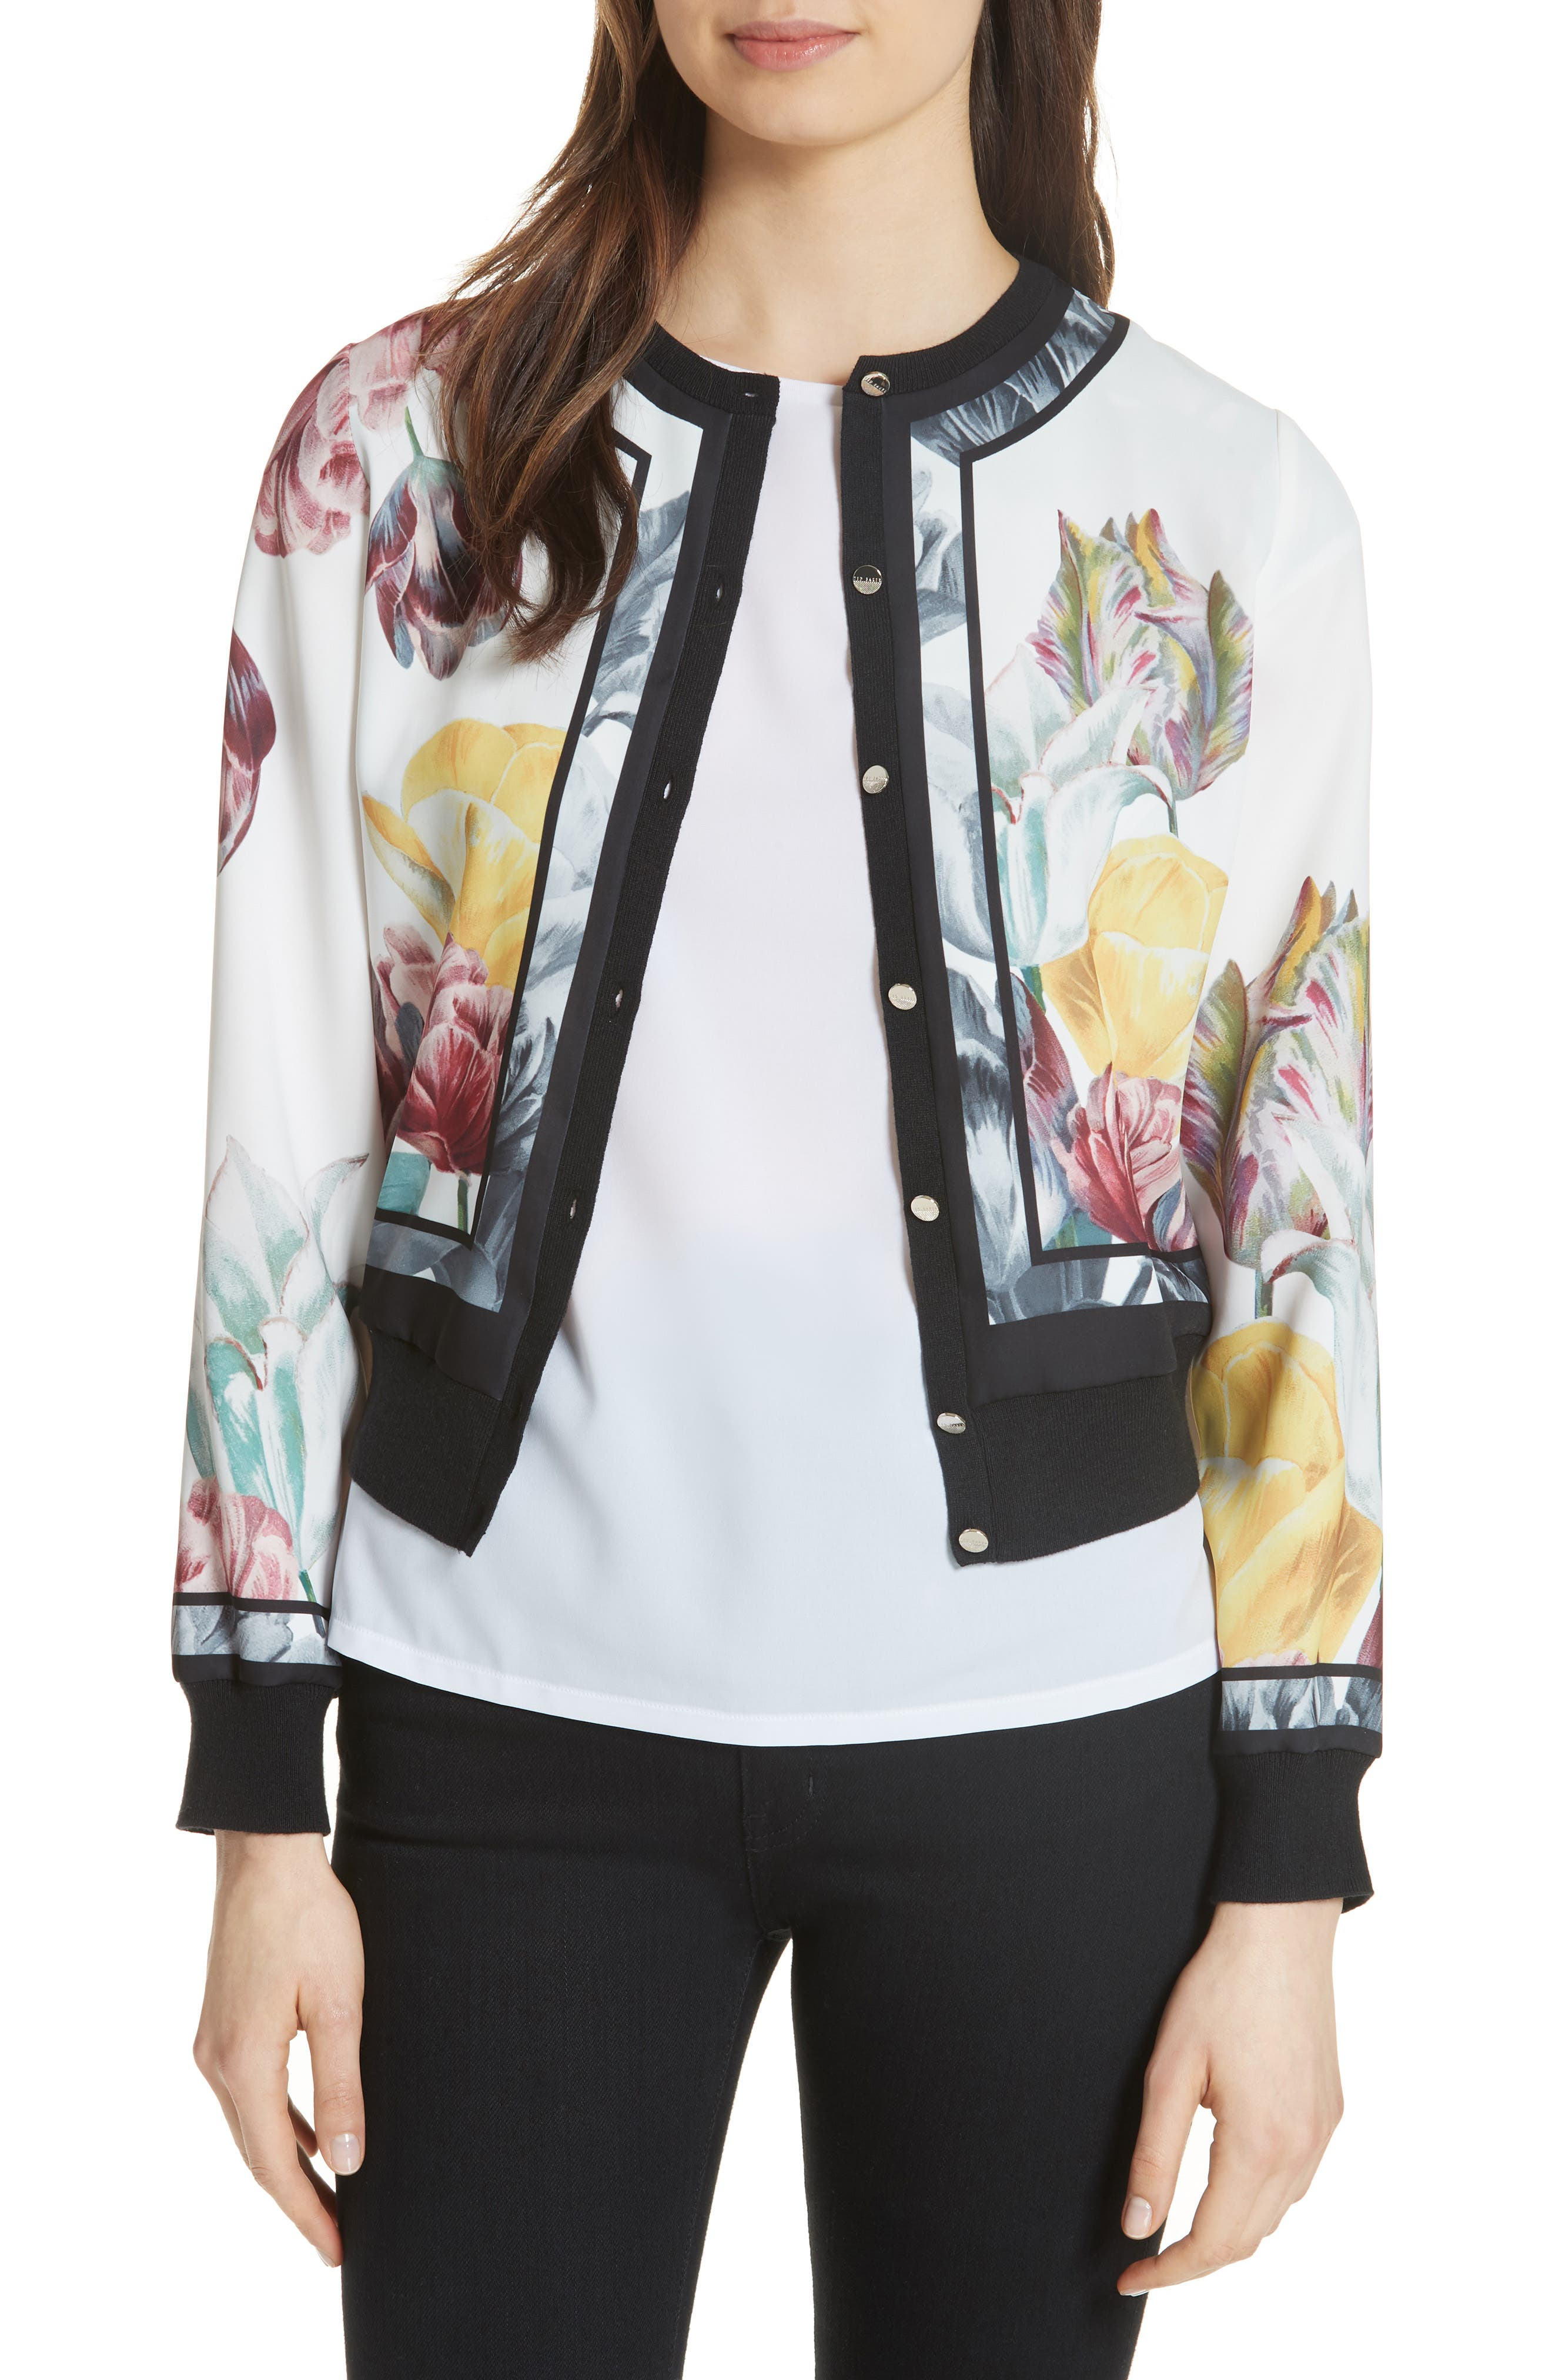 Olyviaa Tranquility Woven Jacket,                             Main thumbnail 1, color,                             WHITE